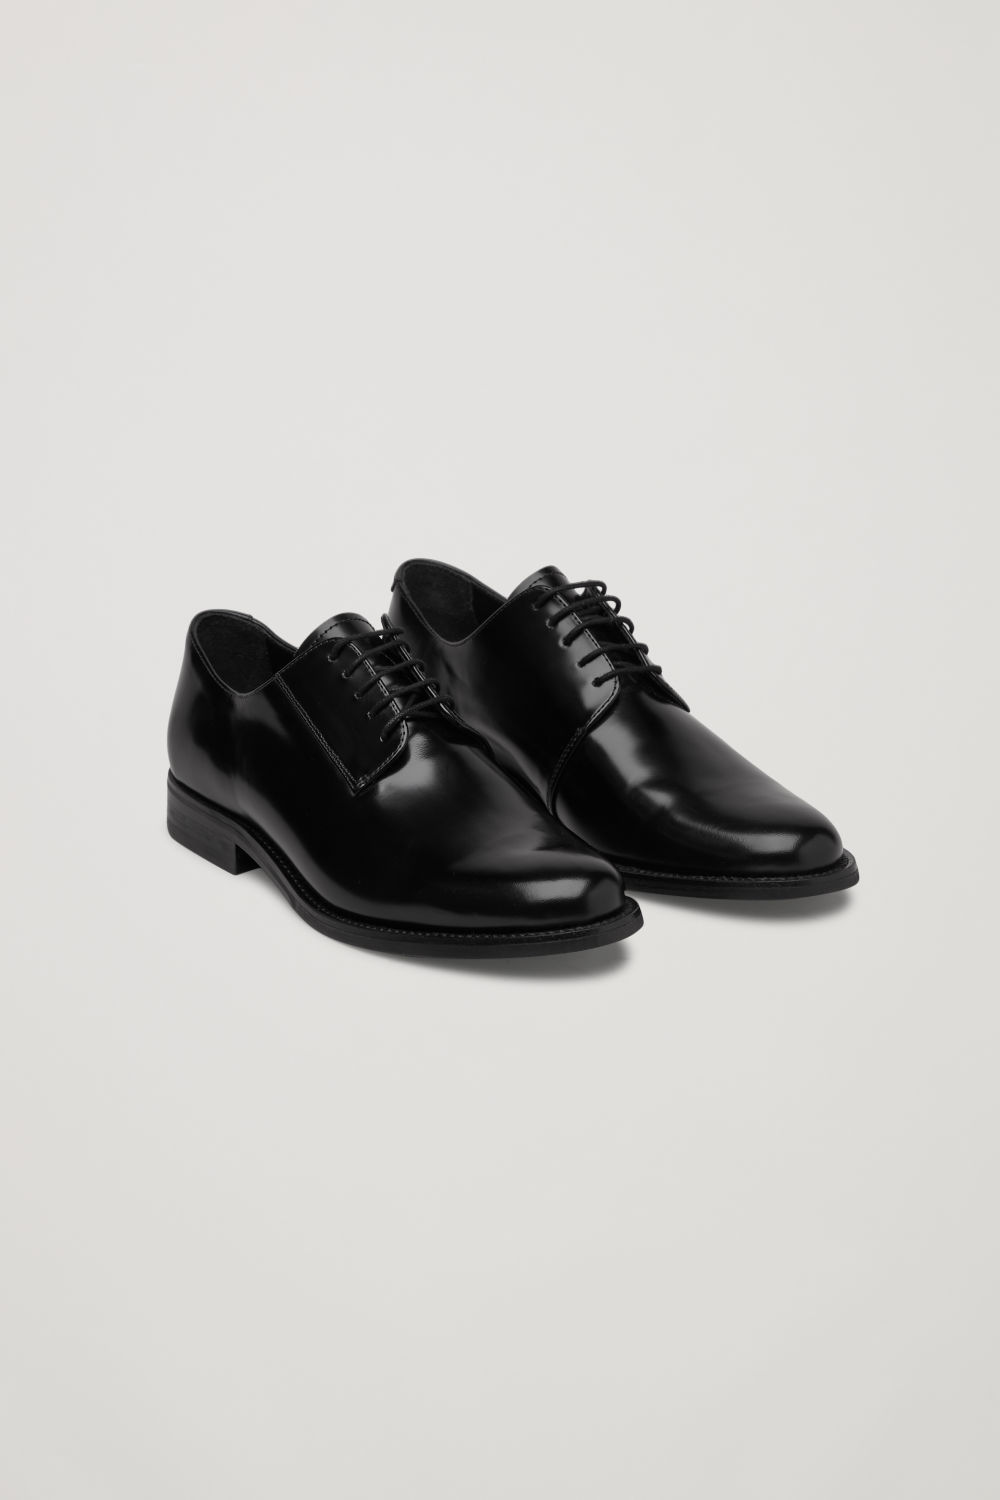 POINT-TOE LEATHER OXFORD SHOES